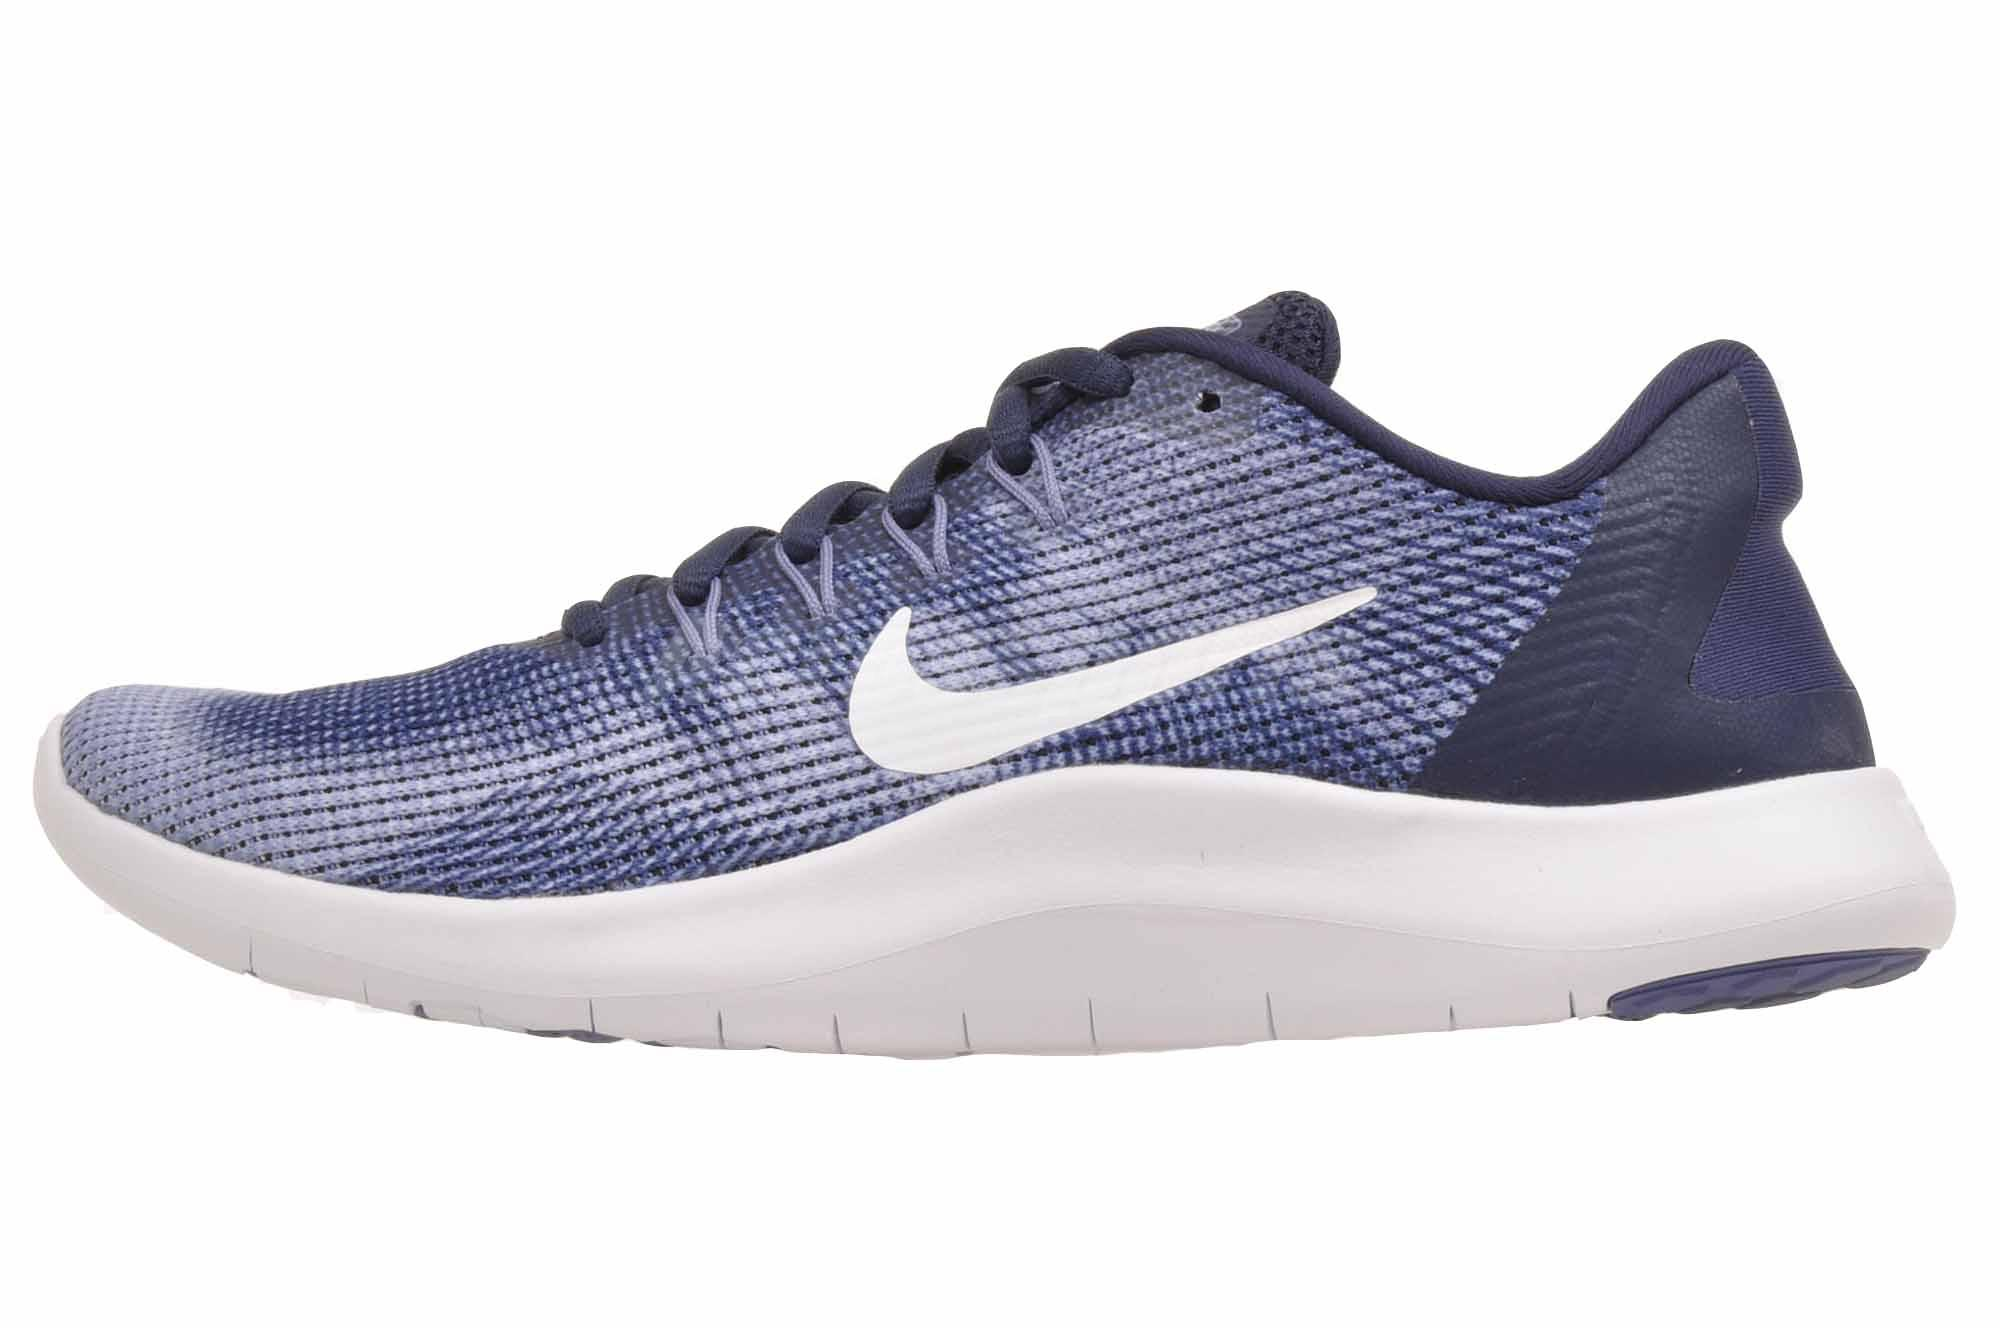 dbb5ed4b7e8b Details about Nike Wmns Flex 2018 RN Running Womens Shoes Navy Blue  AA7408-400